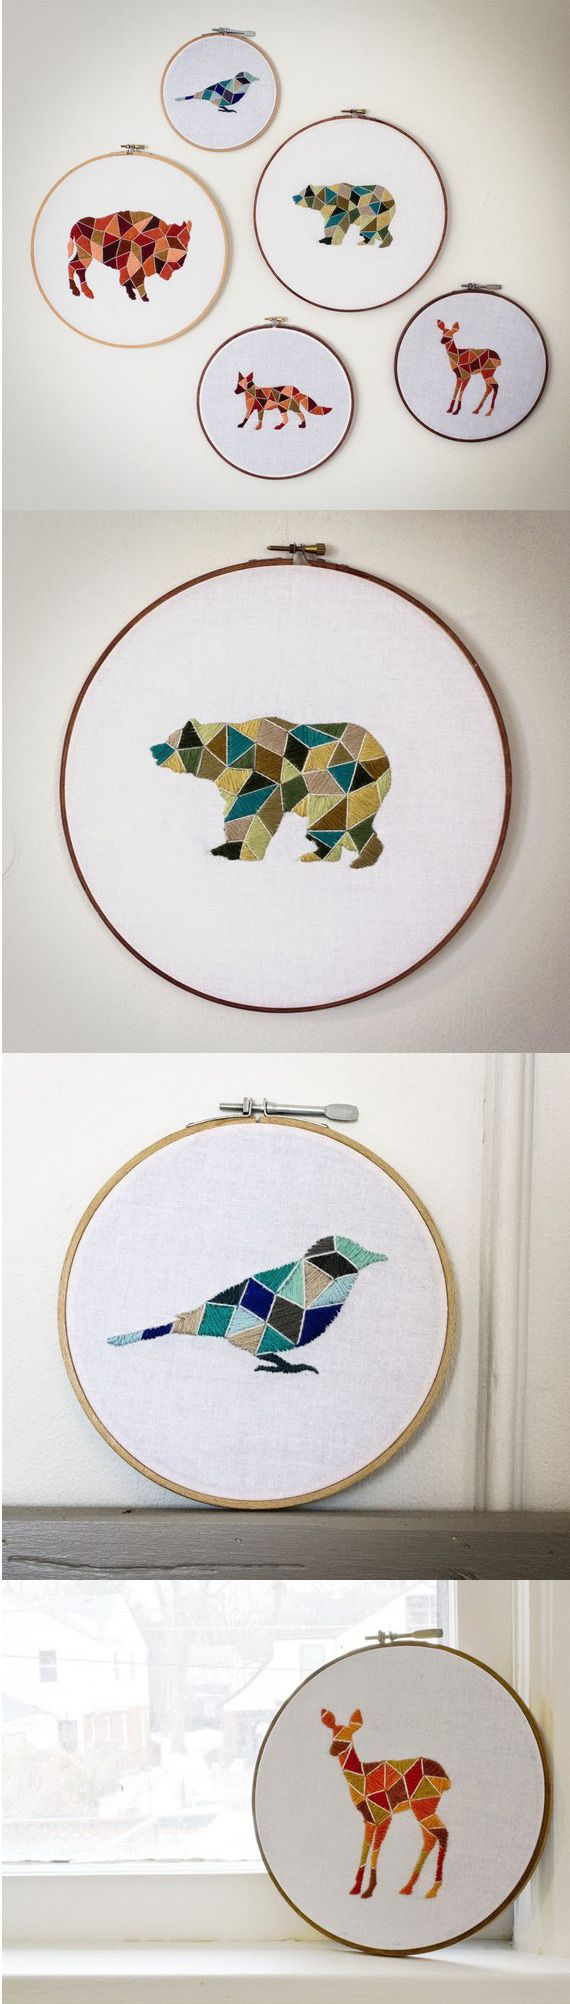 so pretty。Cute animals, geometric shapes, stitching. Right up our alley.